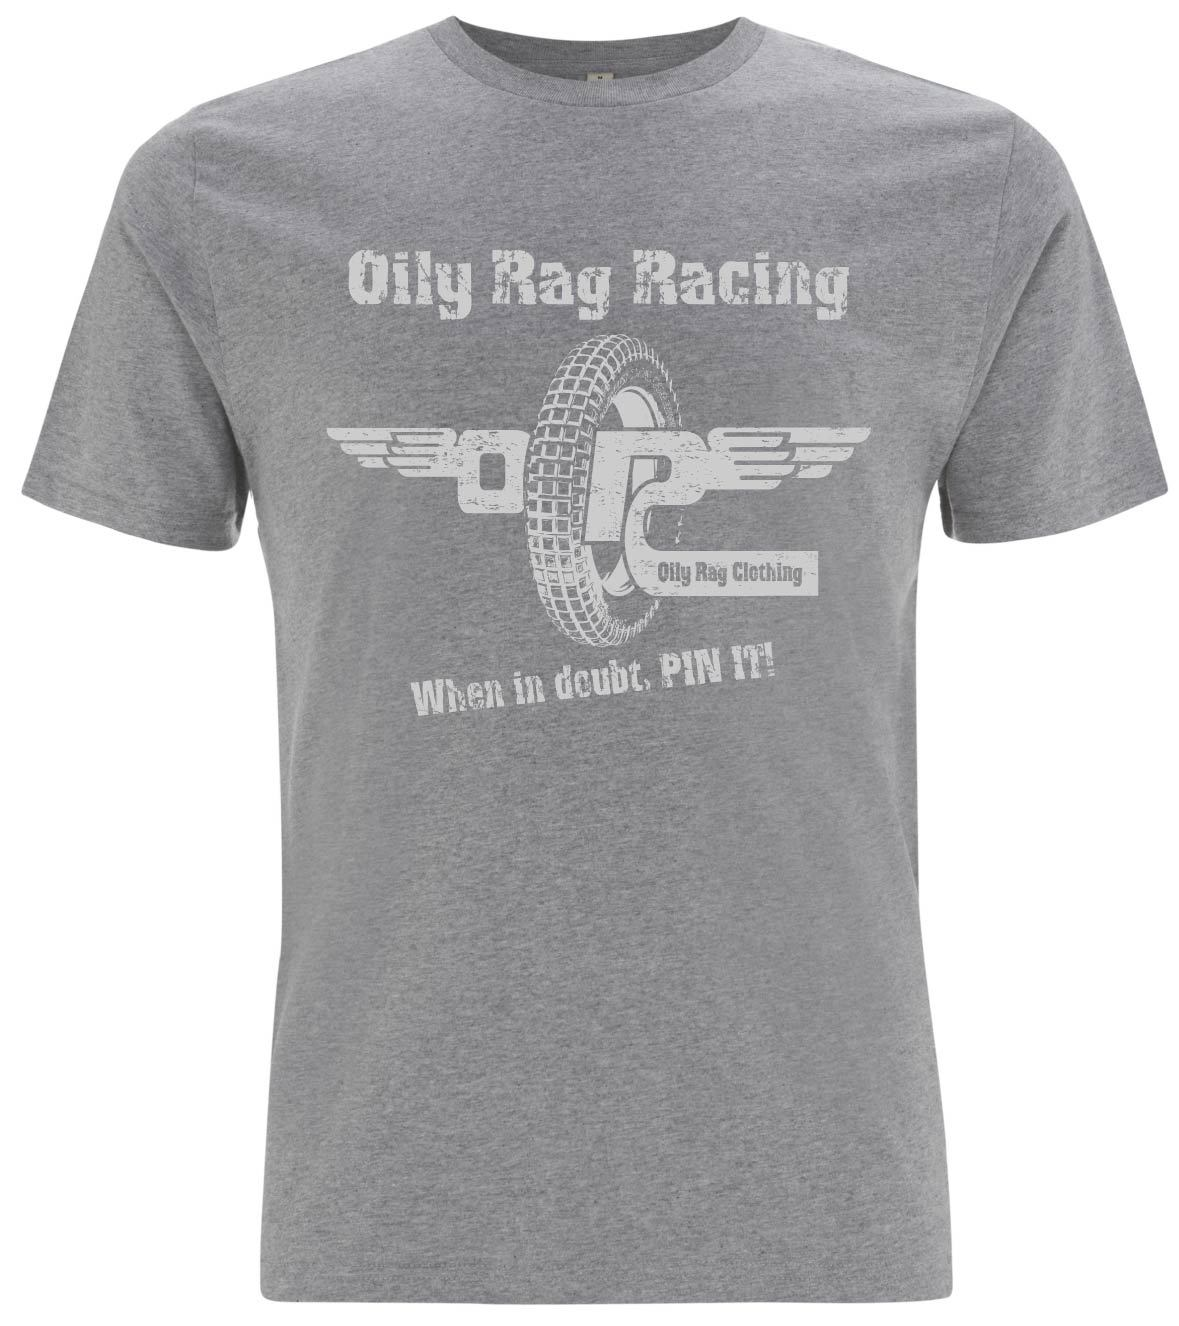 Oily Rag Clothing - Oily Rag Clothing When In Doubt, PIN IT!! T'Shirt - T-Shirts - Salt Flats Clothing